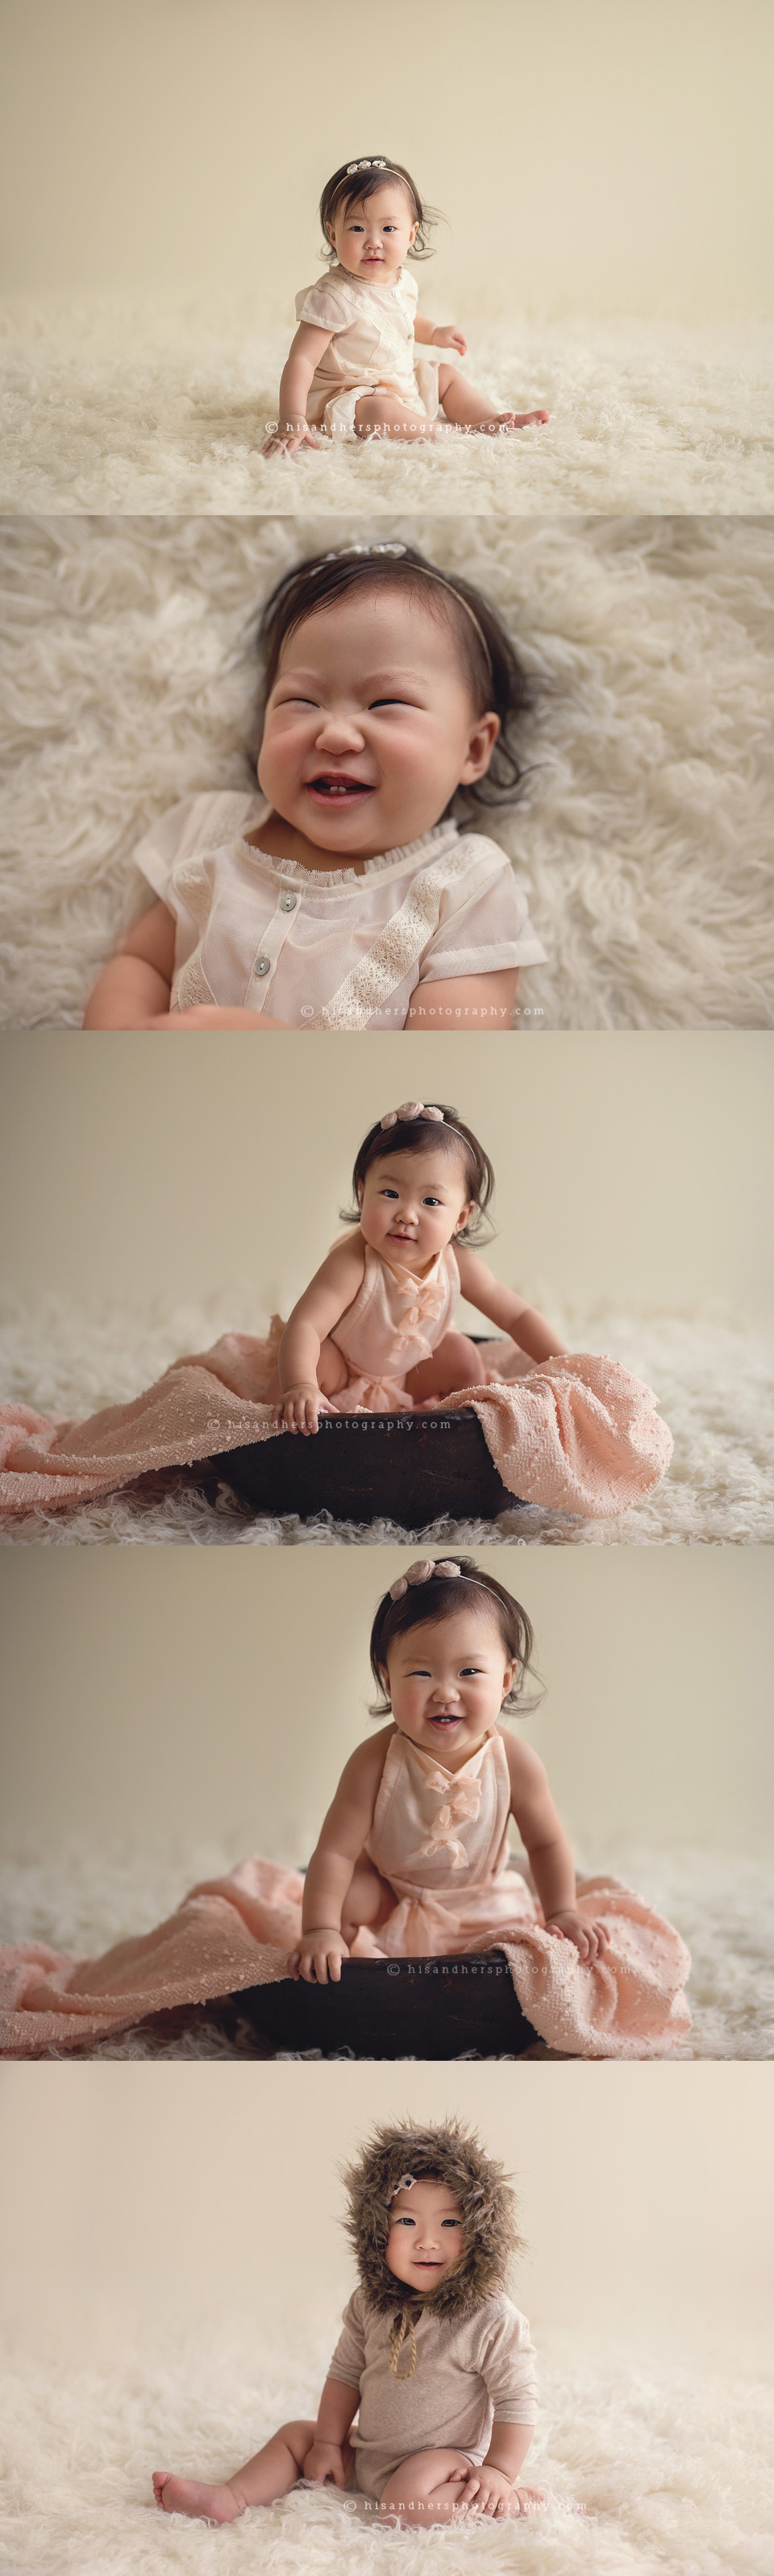 des moines iowa baby photographer child photography 1 year 12 months pictures photography studio